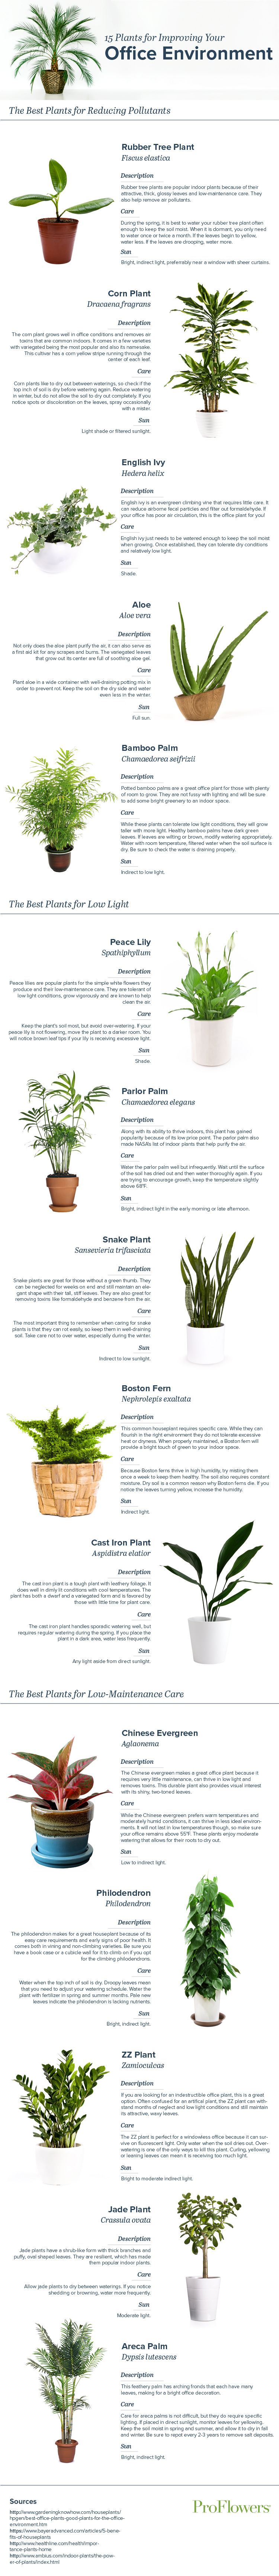 office-plants-infographic